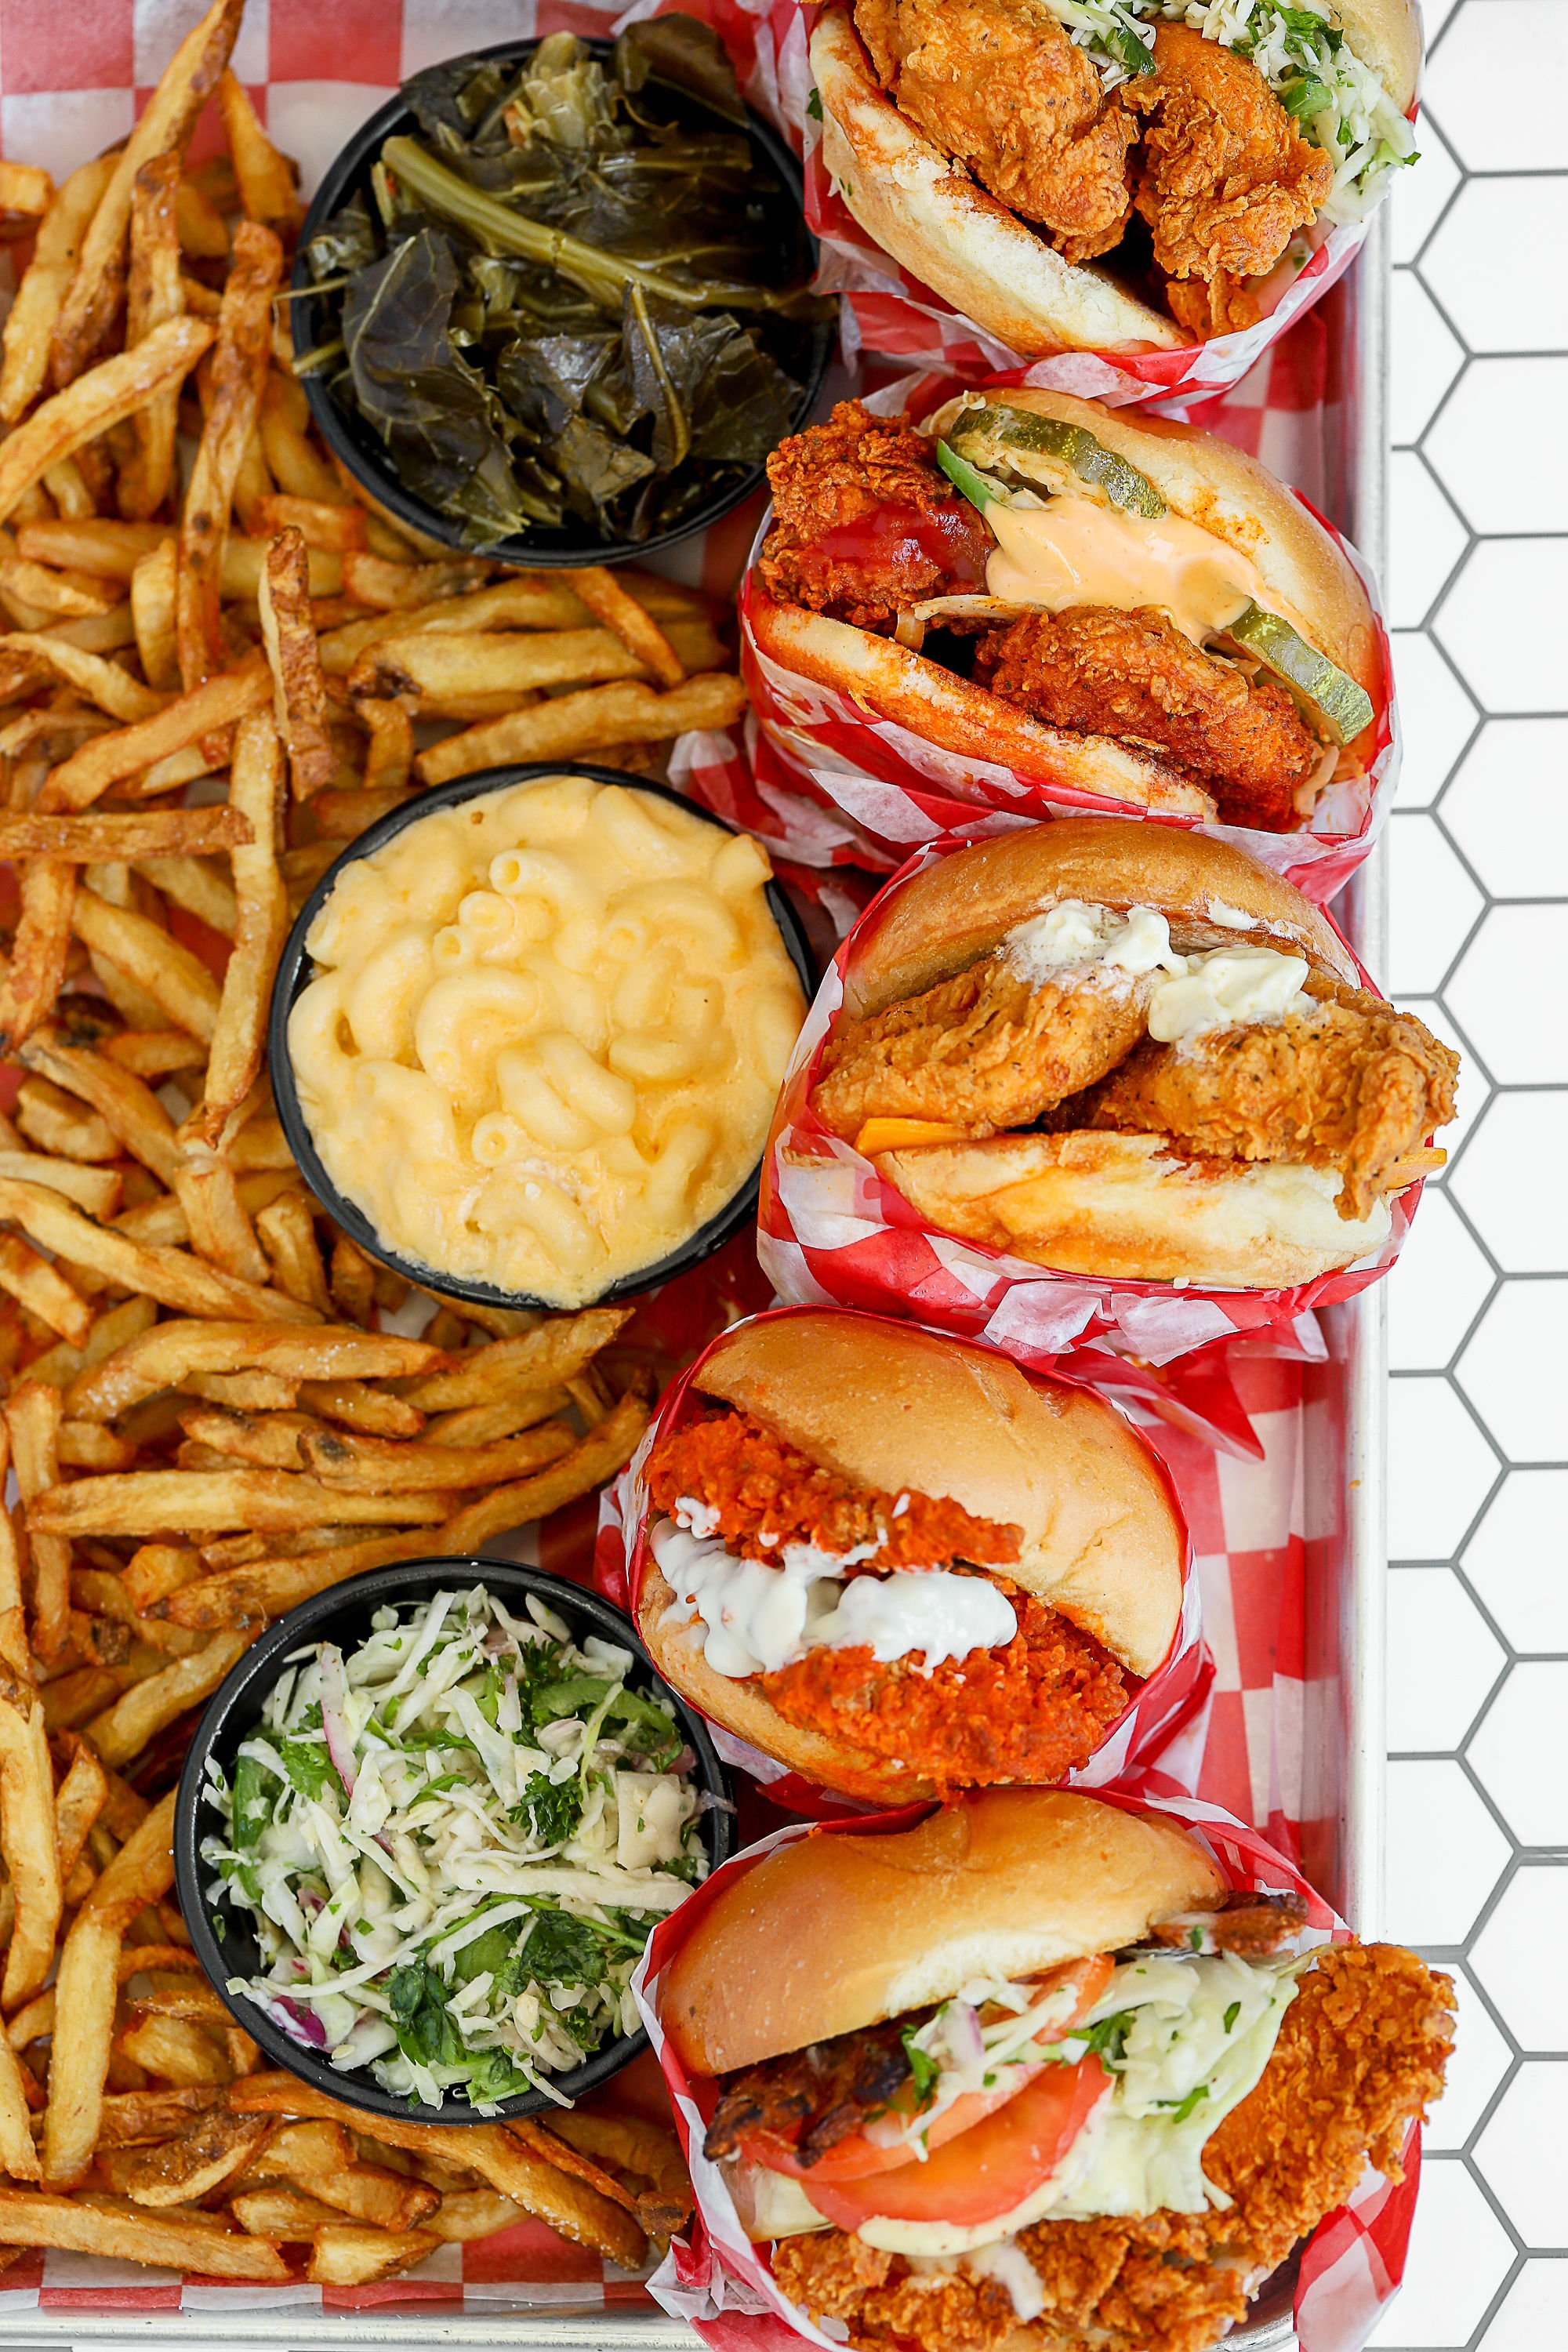 Roaming Rooster is bringing fried chicken sandwiches and more to U Street. Photo courtesy of Roaming Rooster.